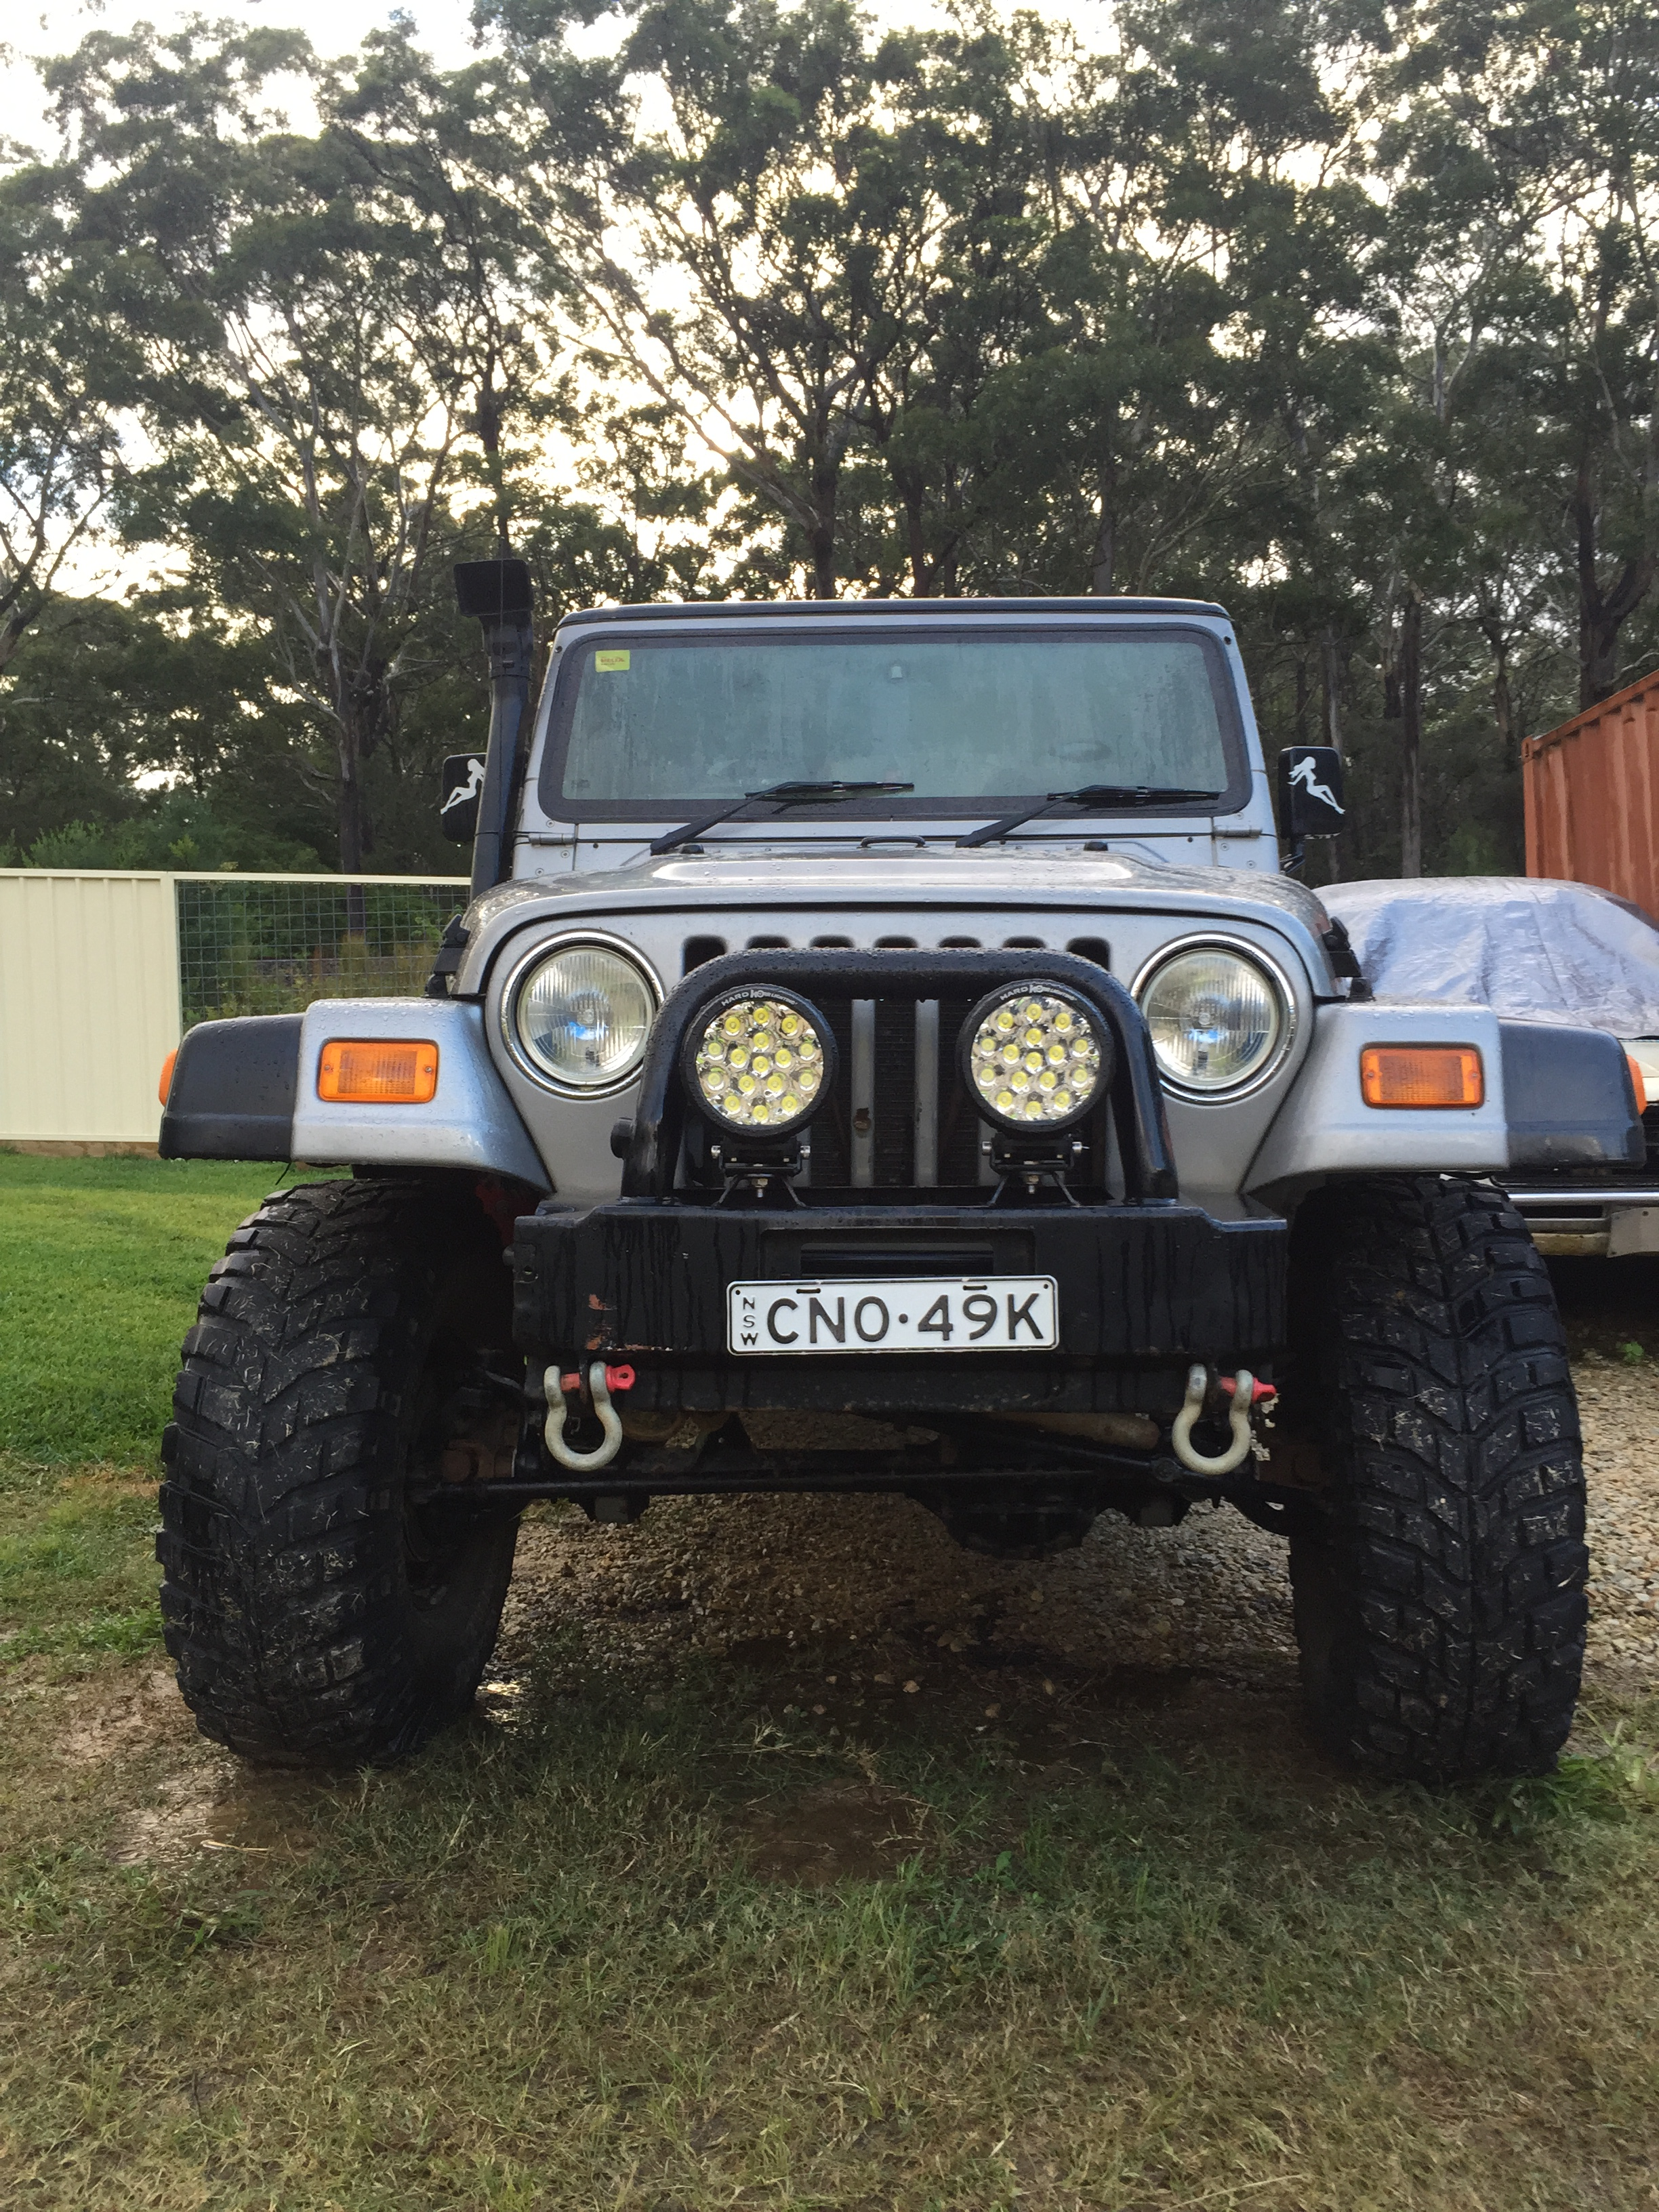 2001 jeep wrangler for sale or swap nsw mid north coast. Black Bedroom Furniture Sets. Home Design Ideas